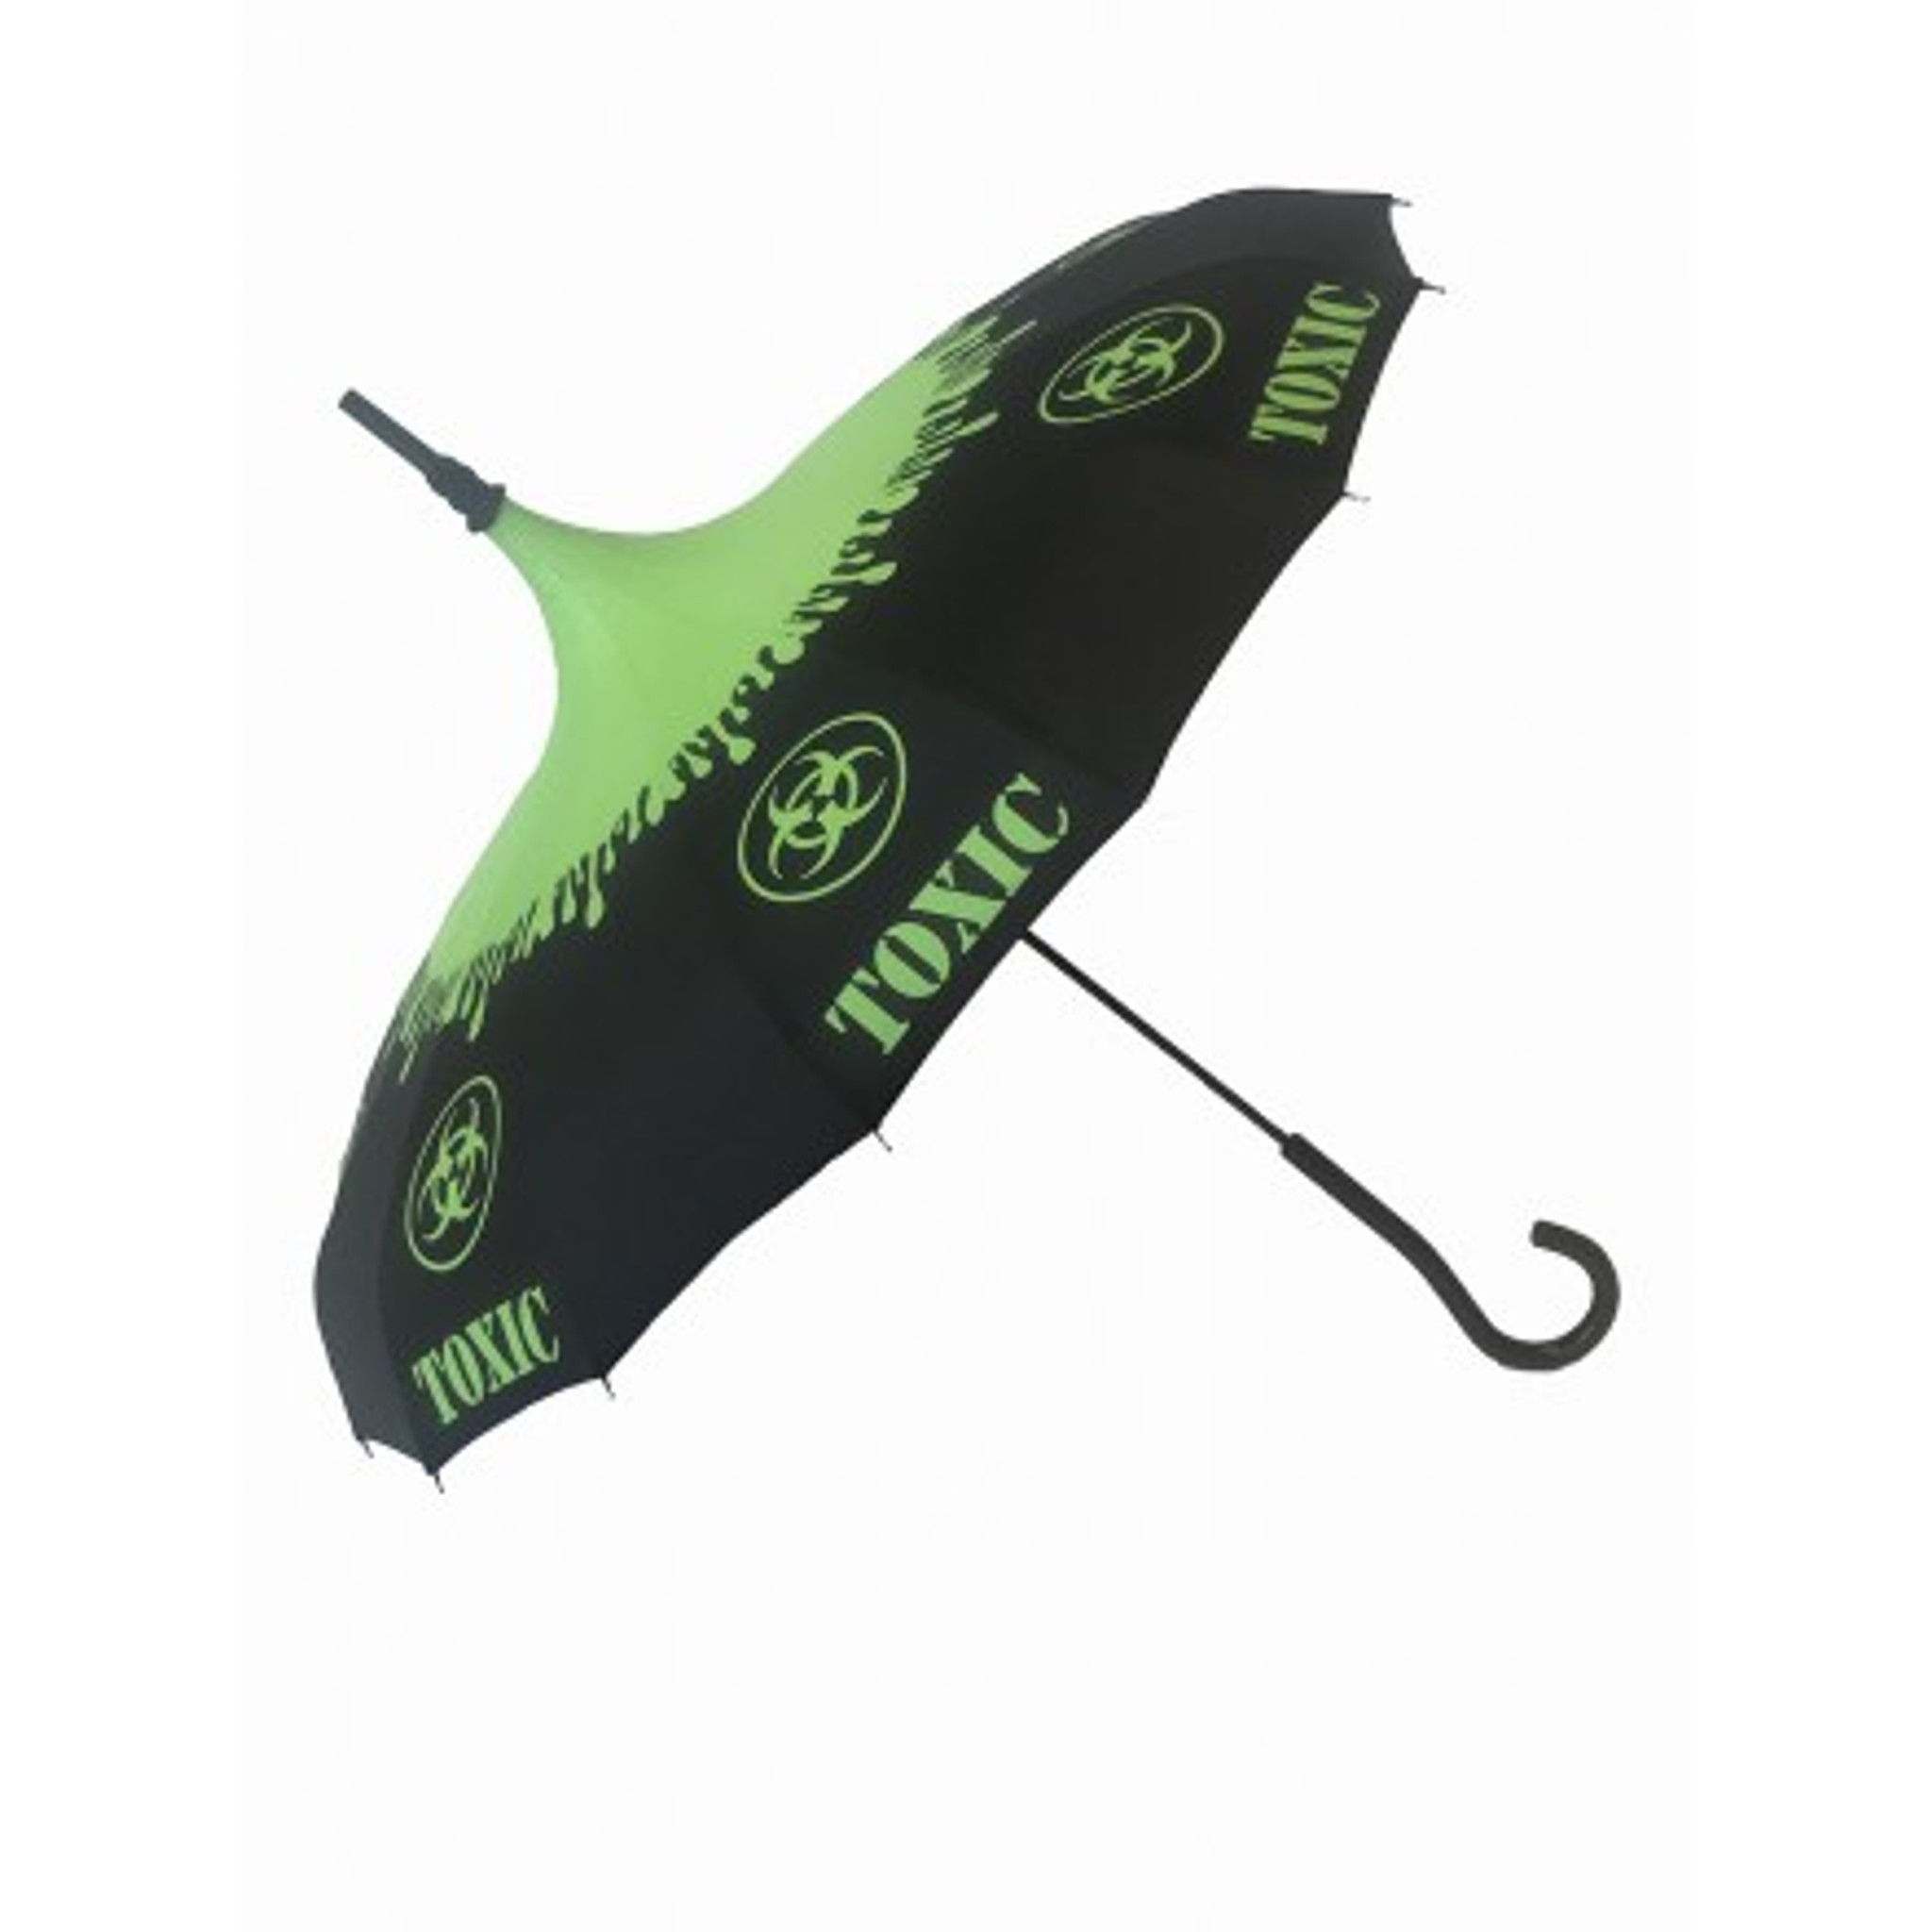 Check out this cool green and black pagoda umbrella with a toxic symbol dripping green graphic. It features also features a hook style handle. It is a Sunny or Wet must have accessory for all your weather needs (Yes that's right, this is a real umbrella and can get wet, not just a fashion piece) This Umbrella will compliment any good outfit or costume.  Pagoda Style Umbrella Black and green toxic pattern panels Hook-styled handle Sturdy Construction Use as a parasol or rainy weather umbrella  http://petuniarocks.com